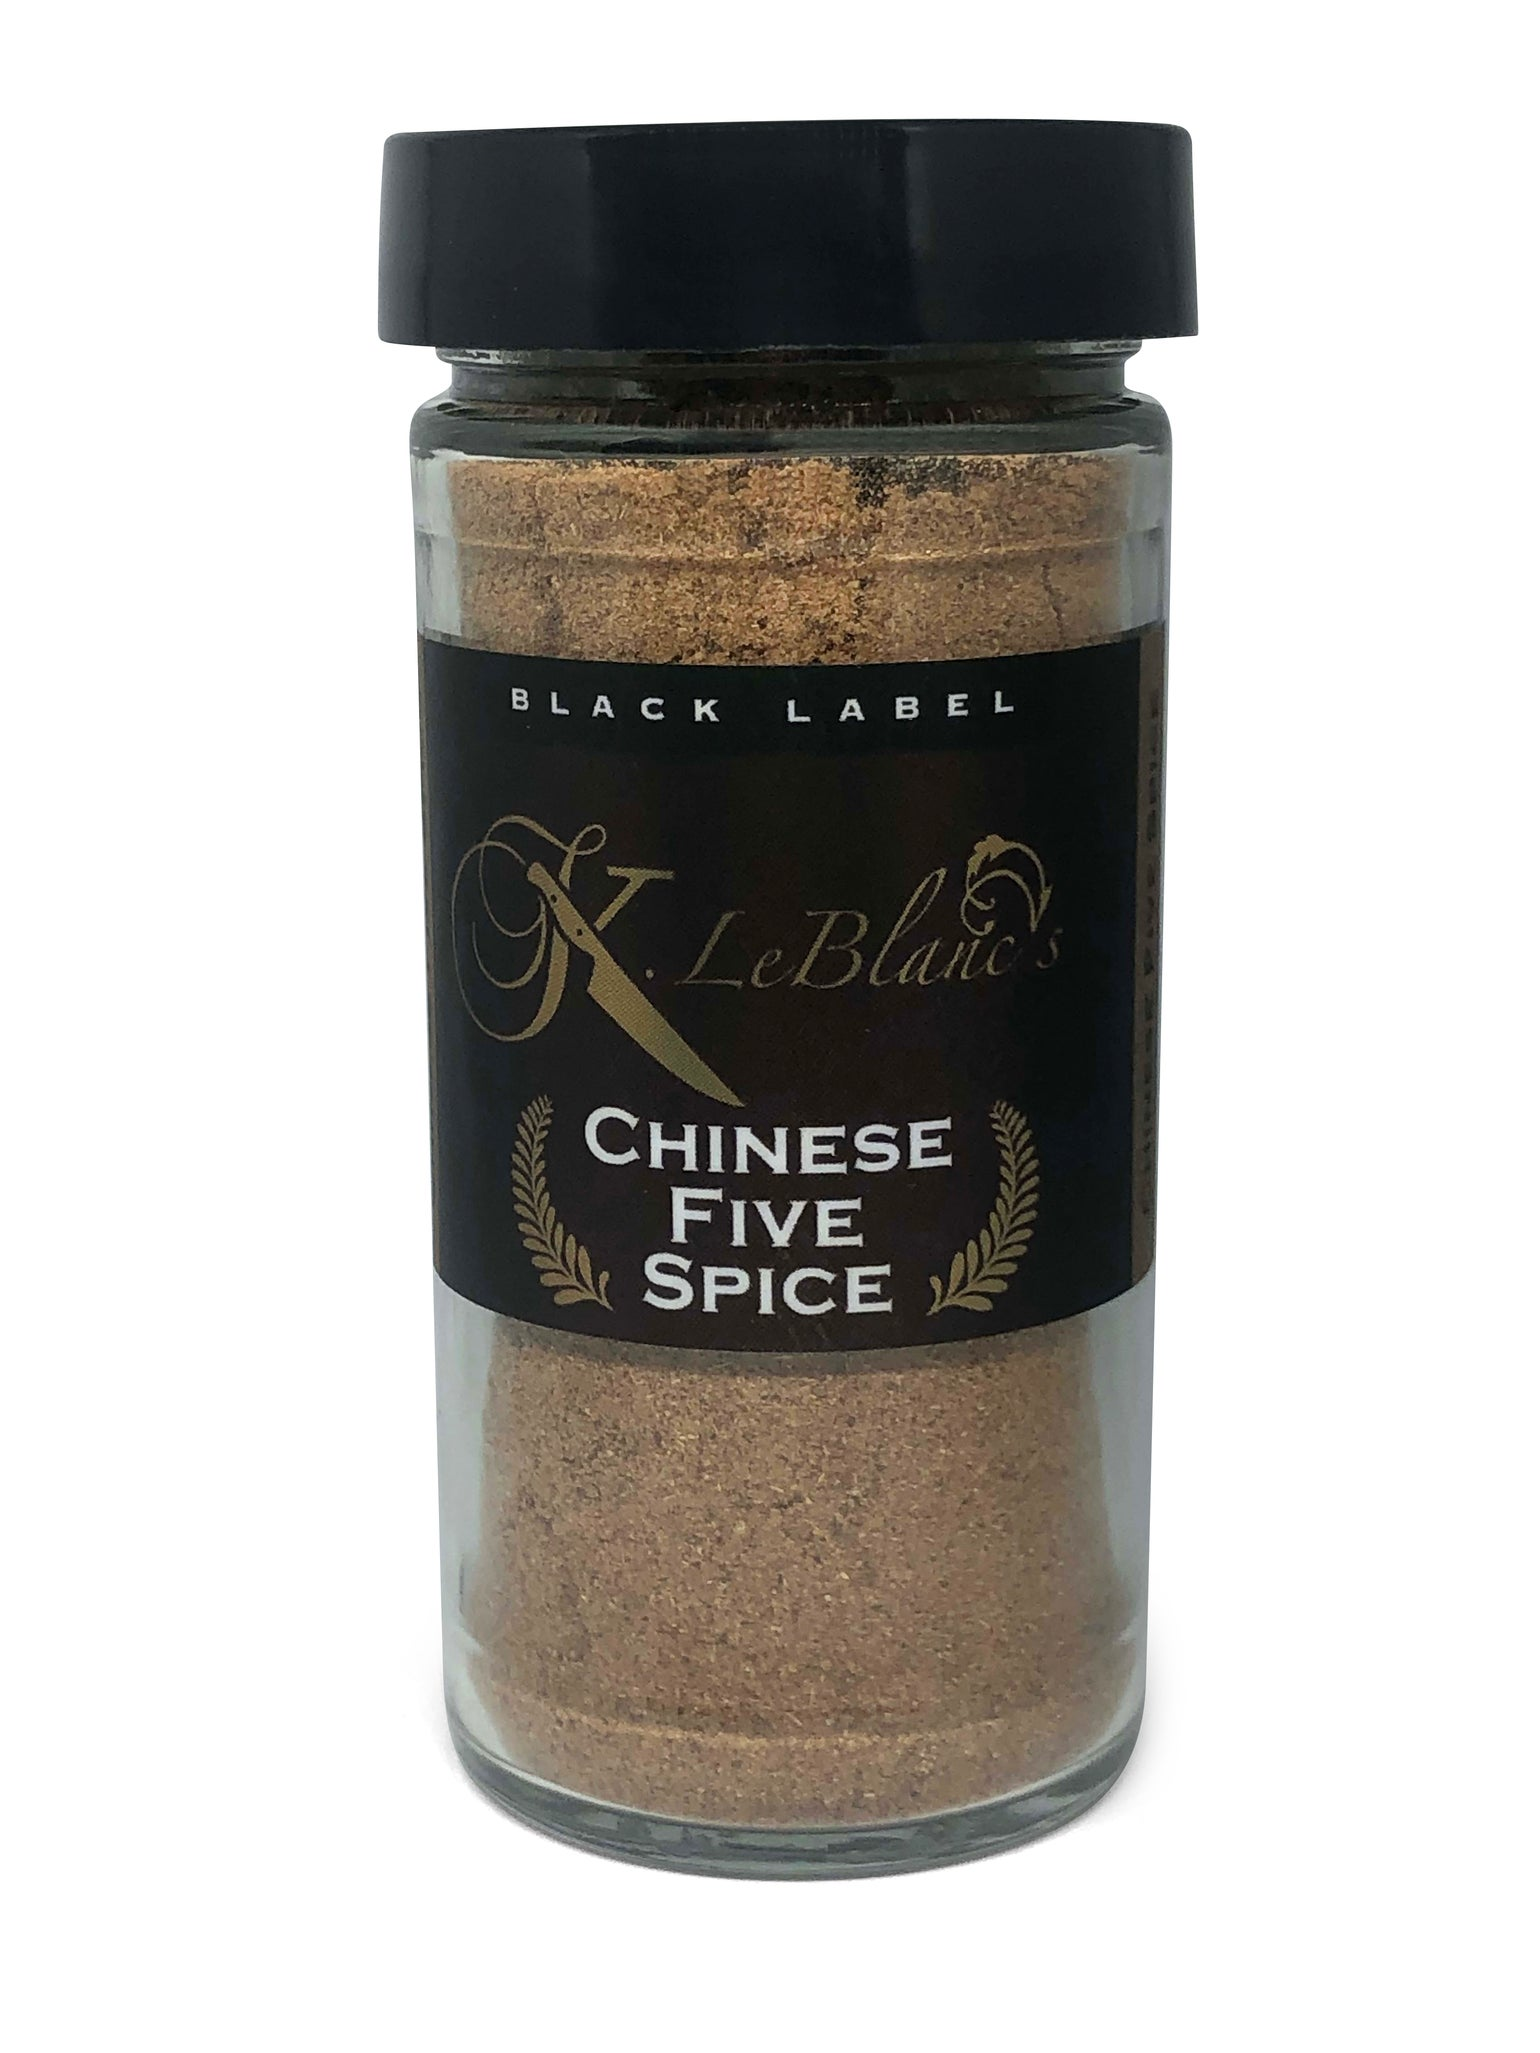 Image of Chinese Five Spice